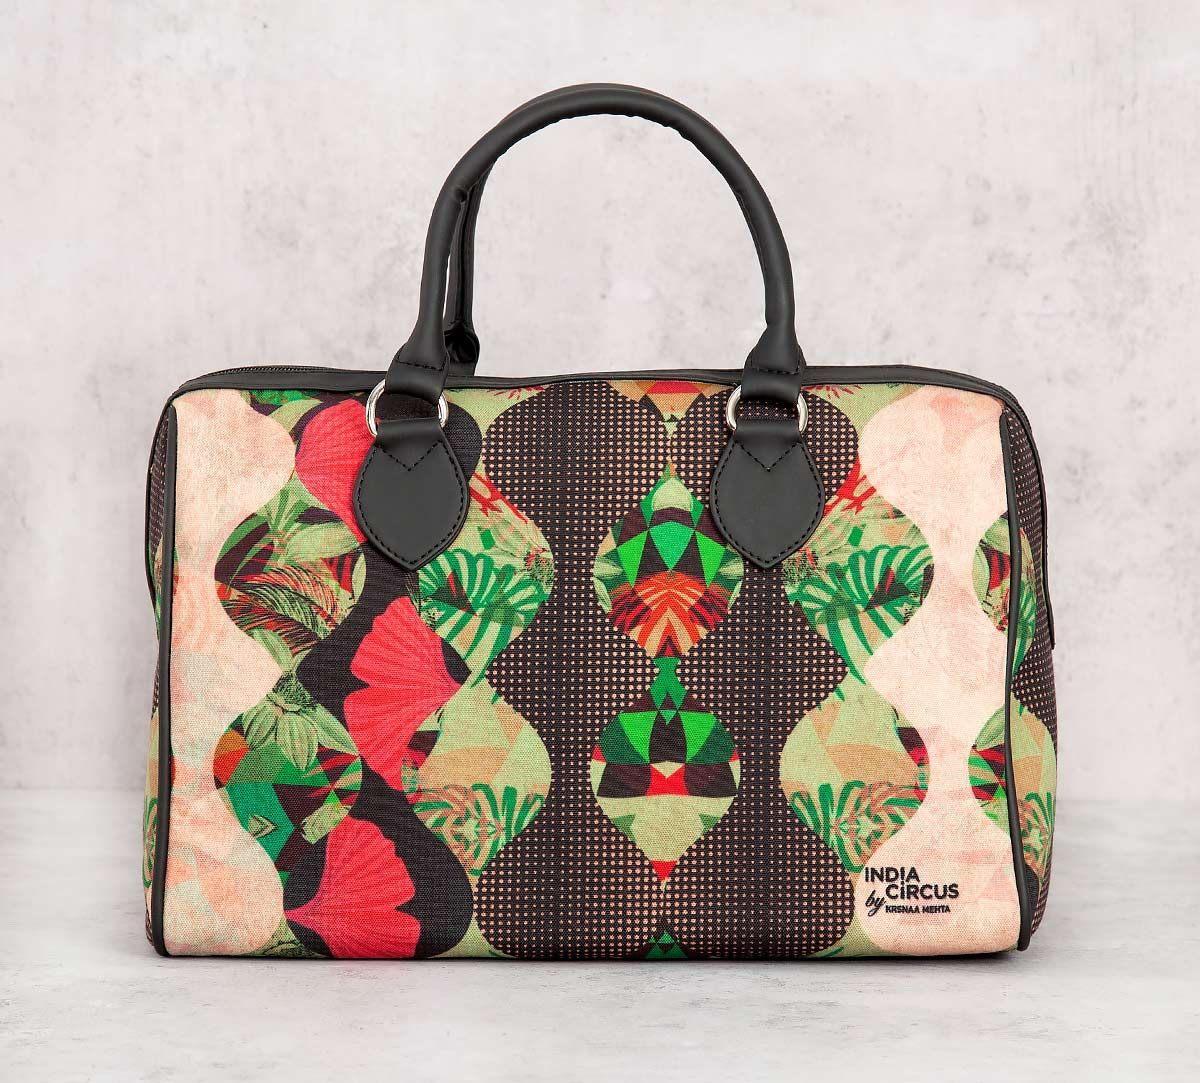 India Circus Bubbled Illusion Duffle Bag